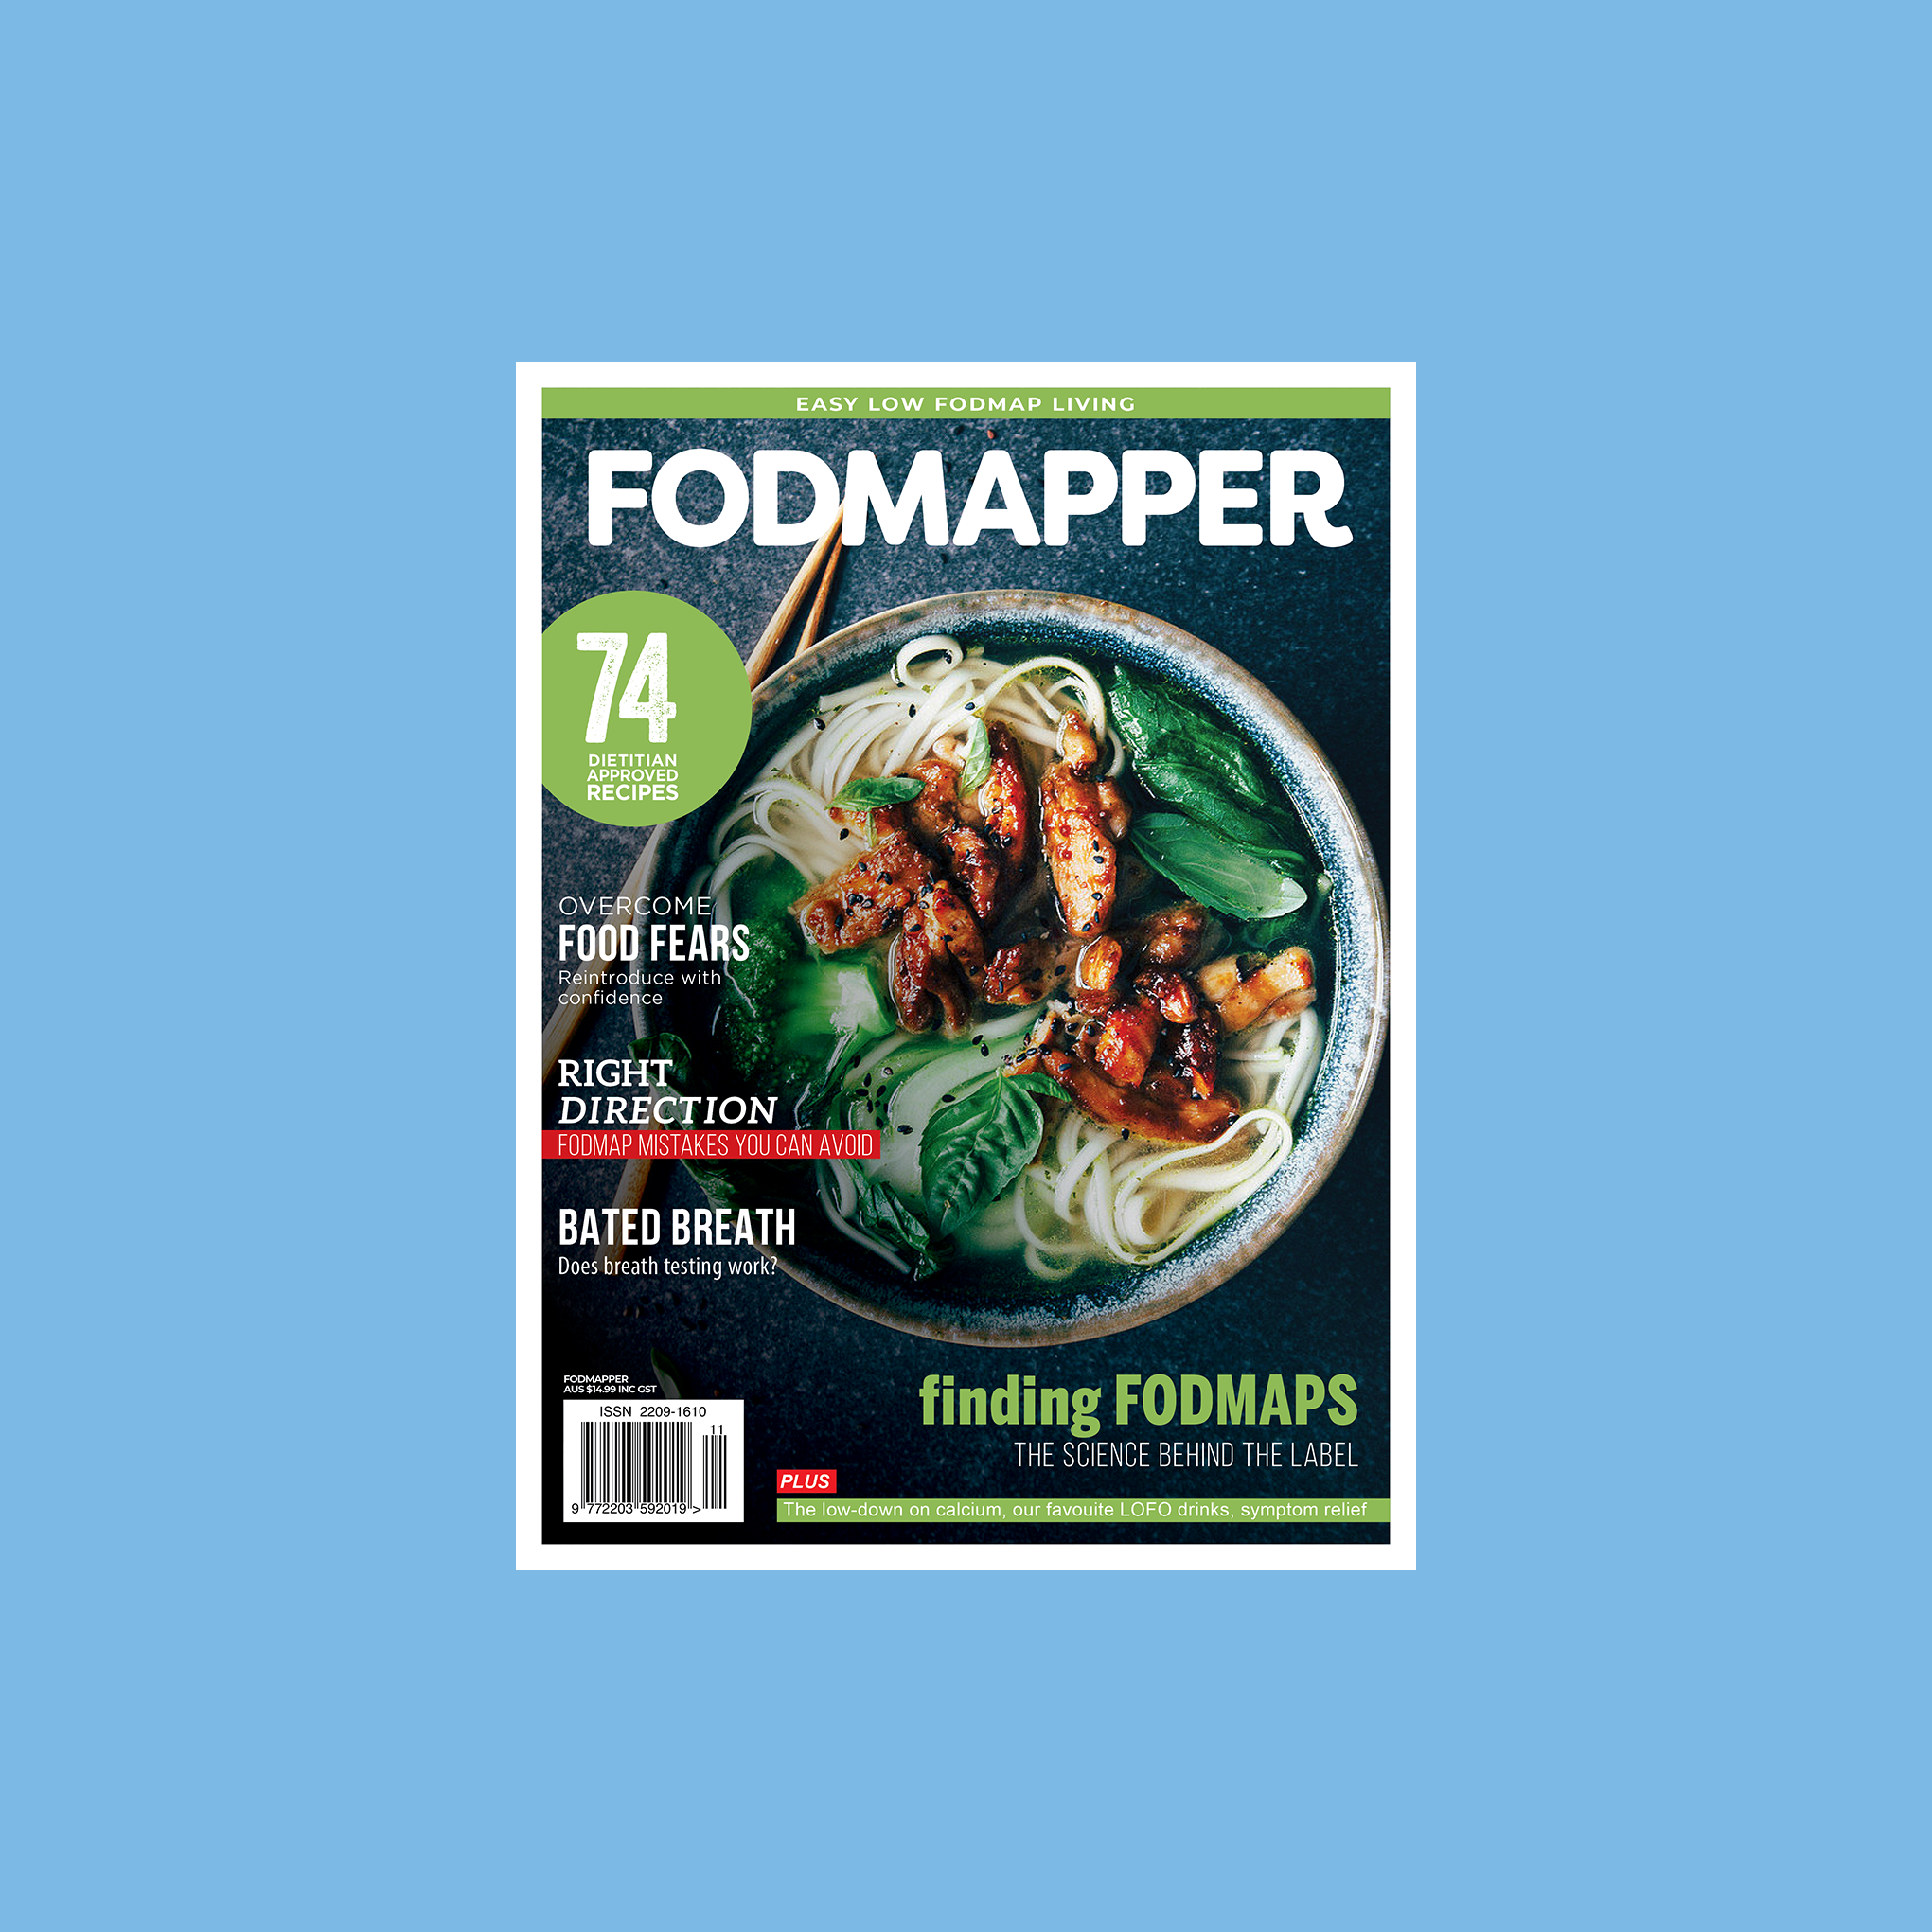 Low FODMAP magazine FODMAPPER Issue 11 cover with a bowl of low FODMAP noodle soup with spicy chicken in dark bowl.